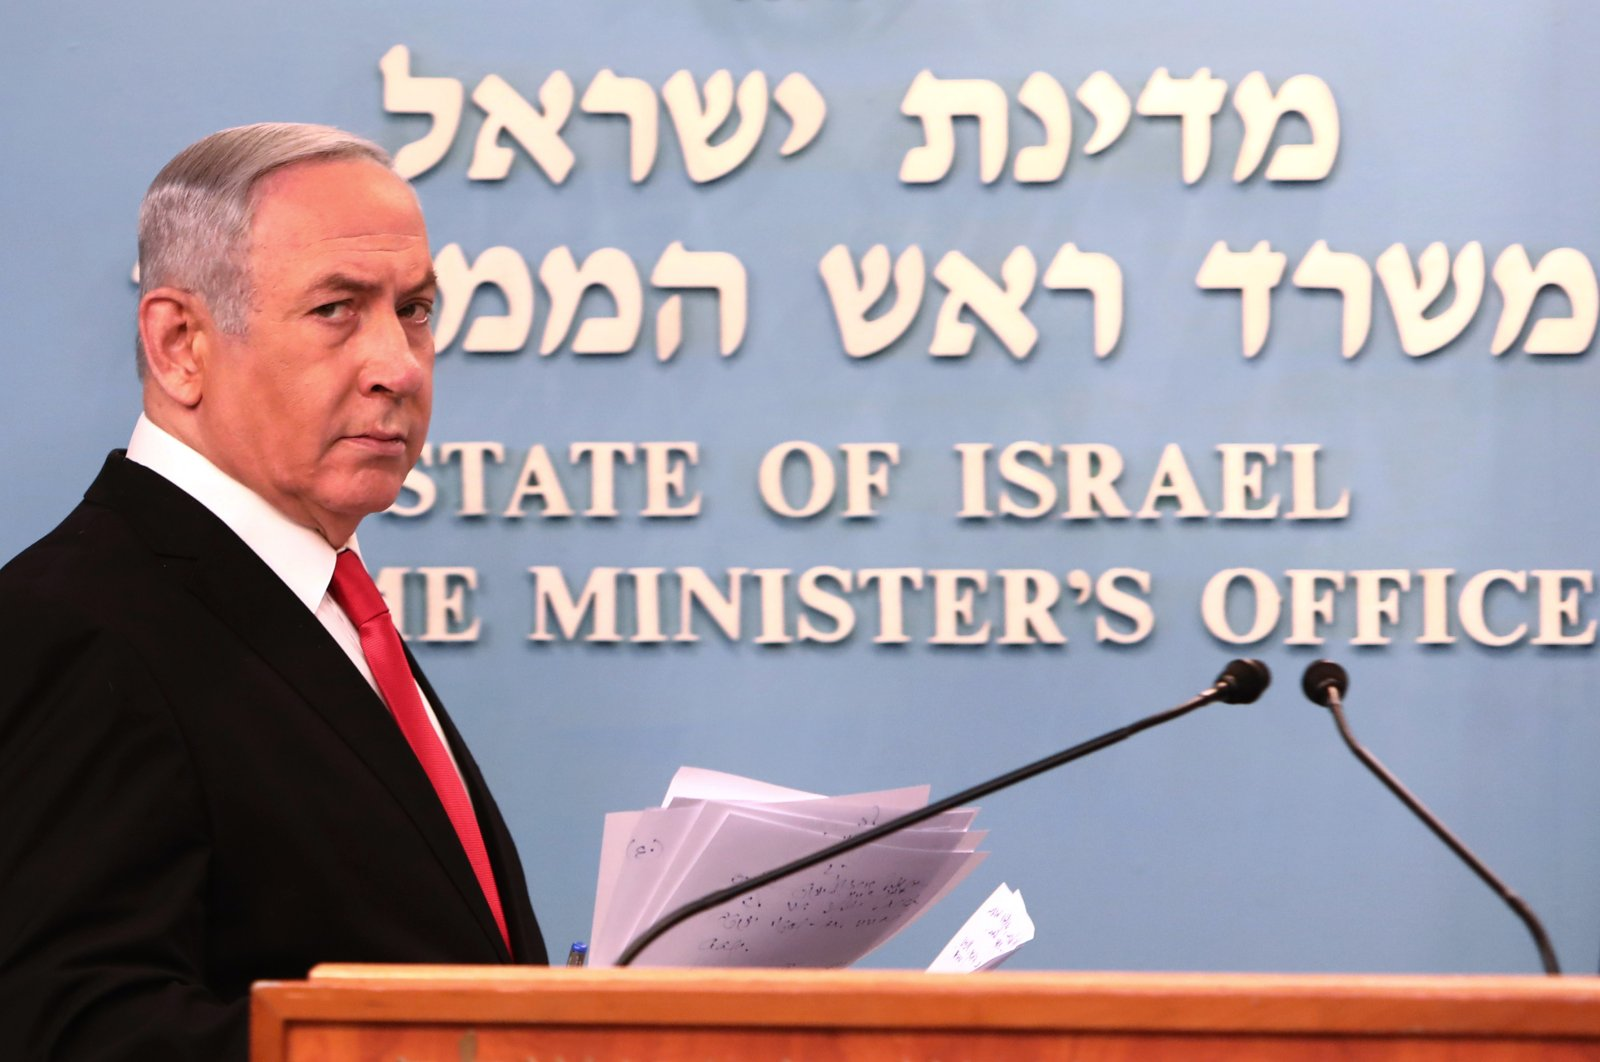 Israeli Prime Minister Benjamin Netanyahu approaches the podium to give a speech from his Jerusalem office, March 14, 2020. (AP Photo)